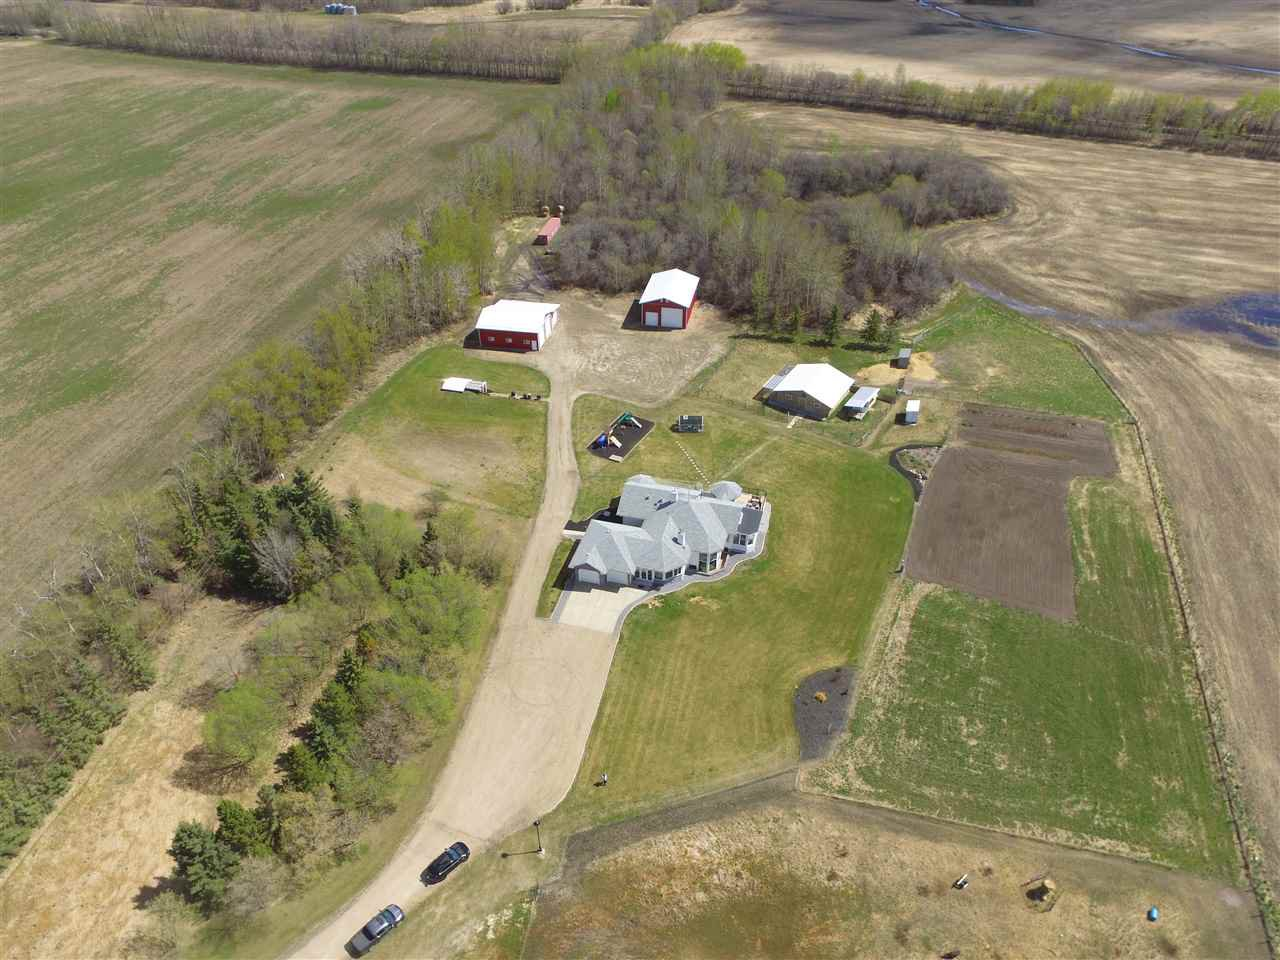 Main Photo: 25215 TWP 571: Rural Sturgeon County House for sale : MLS®# E4197626